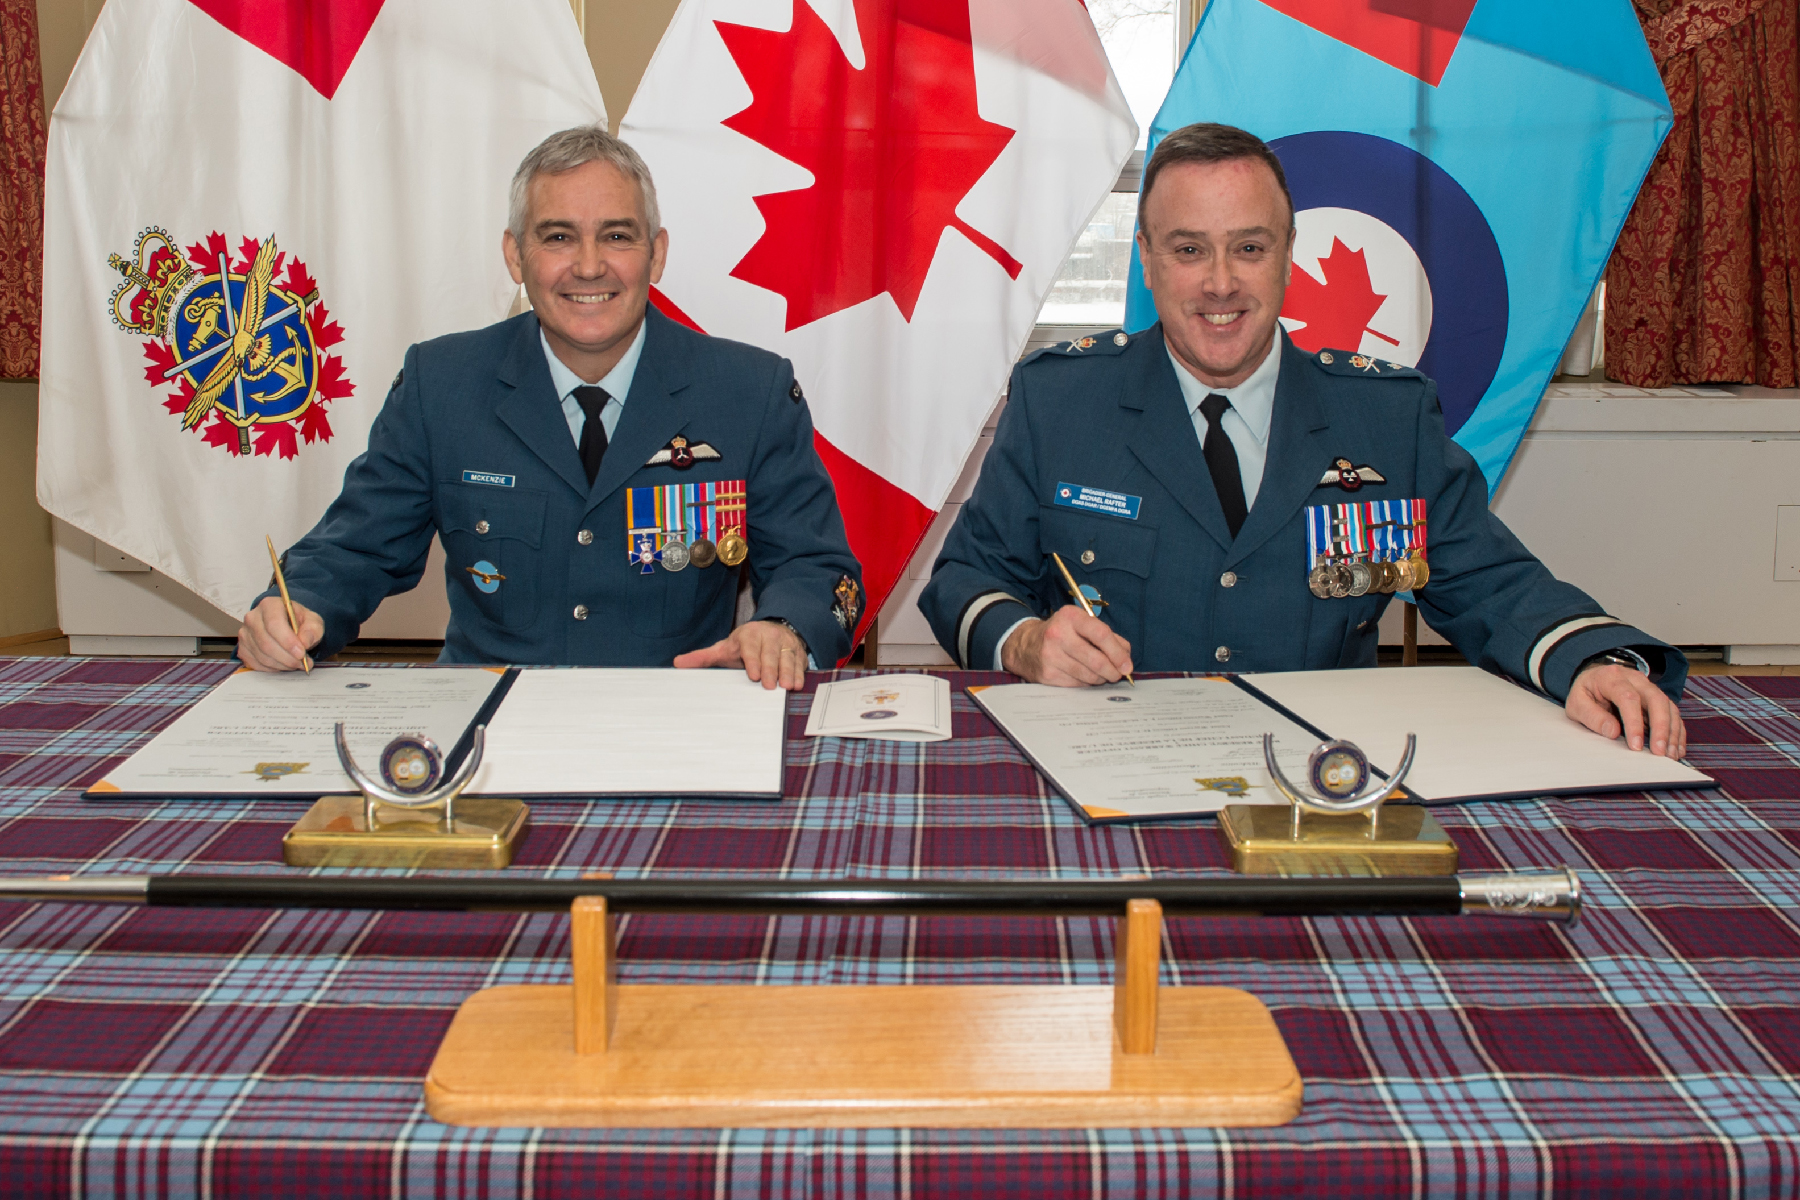 Two men in blue uniforms with medals sit facing the camera, side by side, at a table draped with tartan and backed by three flags. On the table in front of the men are documents and pens.